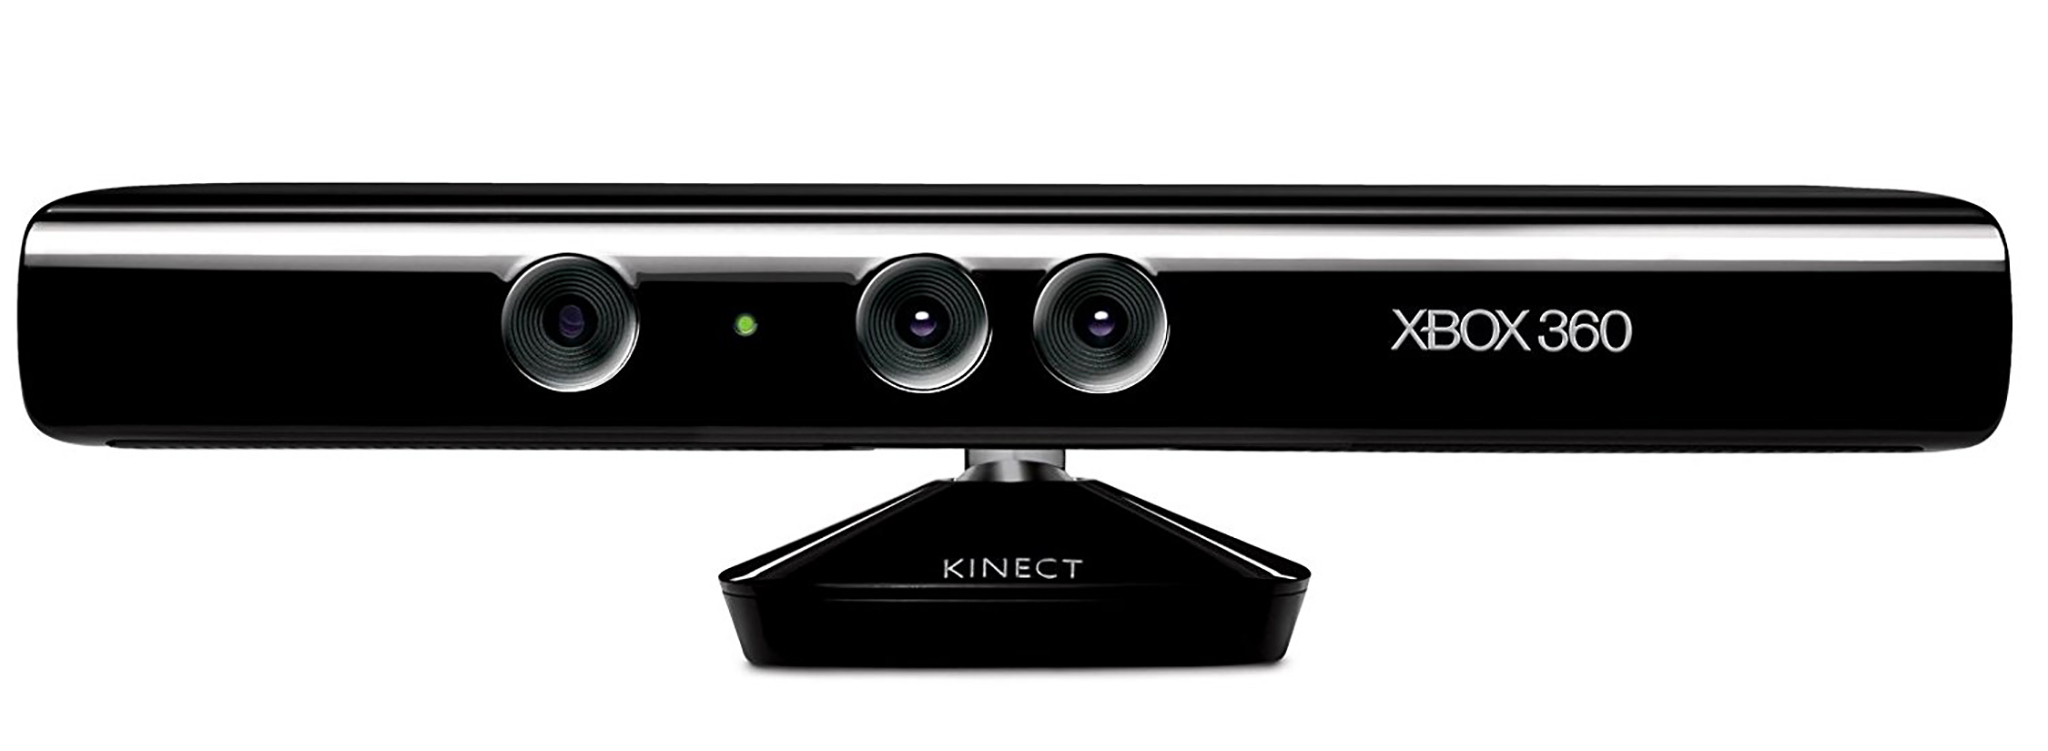 Kinect for Xbox 360.jpg